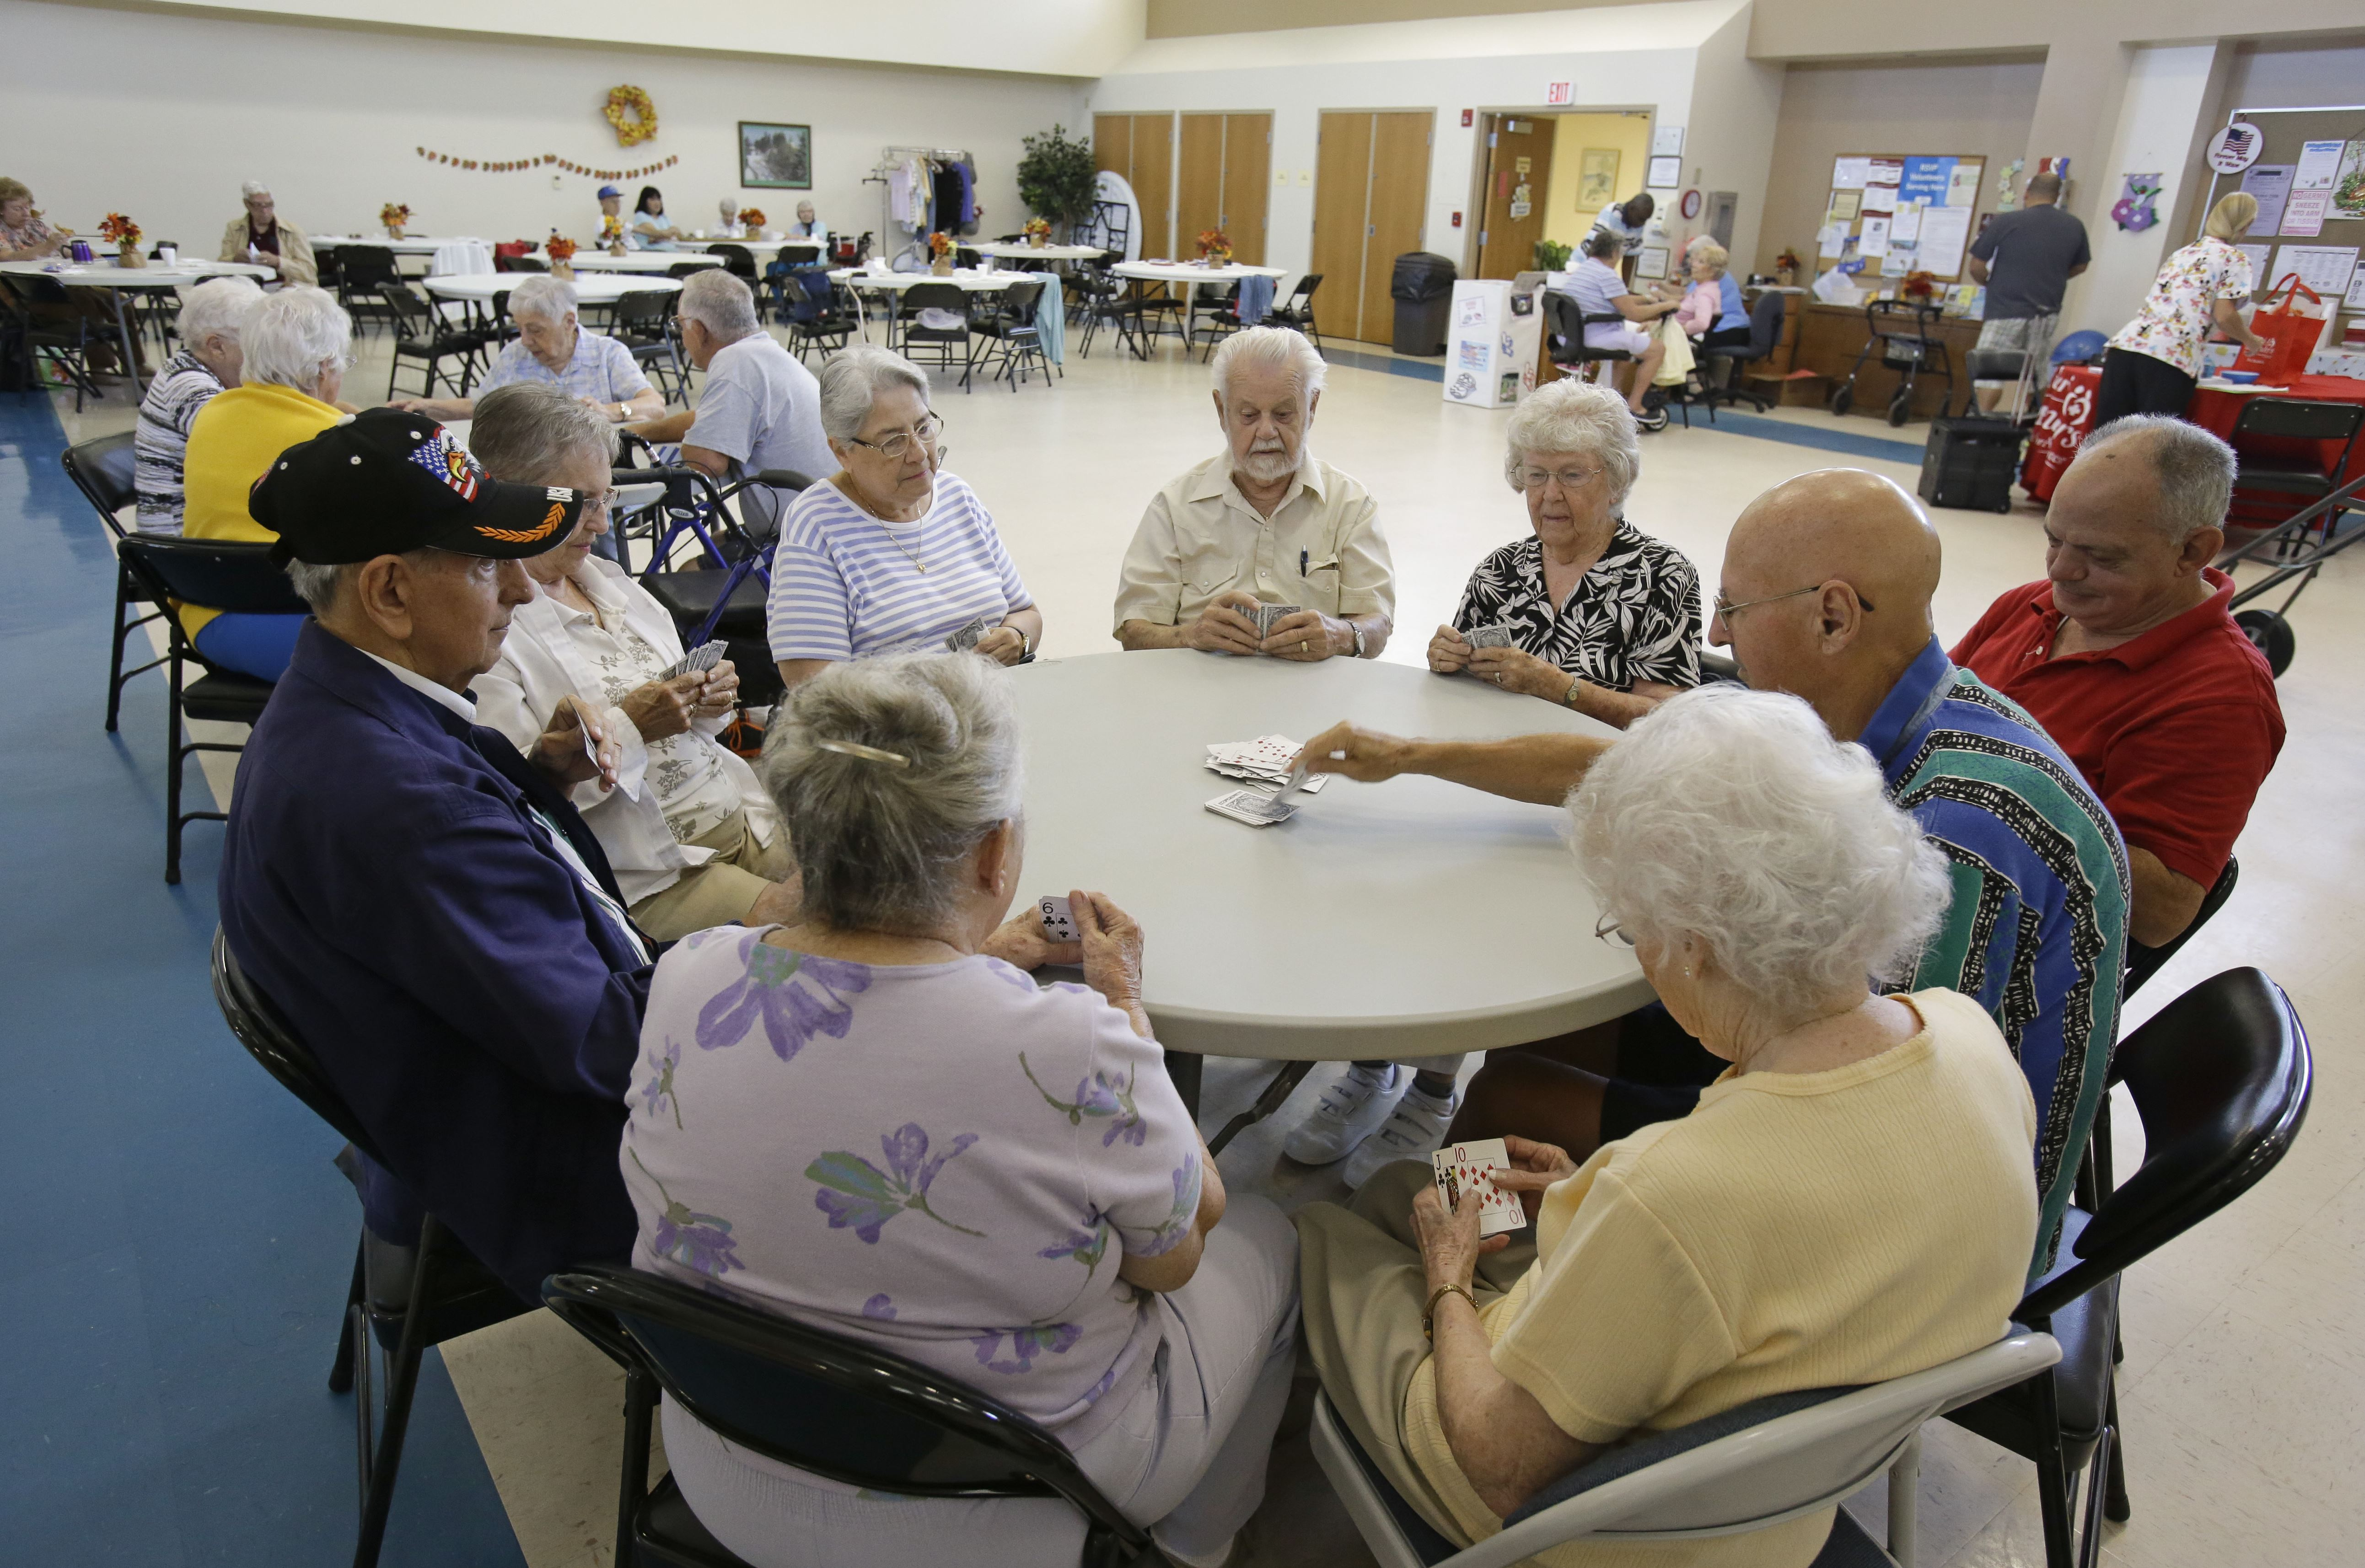 Floridas Gray Future In this 2014 file photo, a group of retired senior citizens gather for cards at the Citrus County Resource Center in Lecanto, Fla. In Citrus County, more than a third of residents are senior citizens, the sixth-highest rate in the nation.